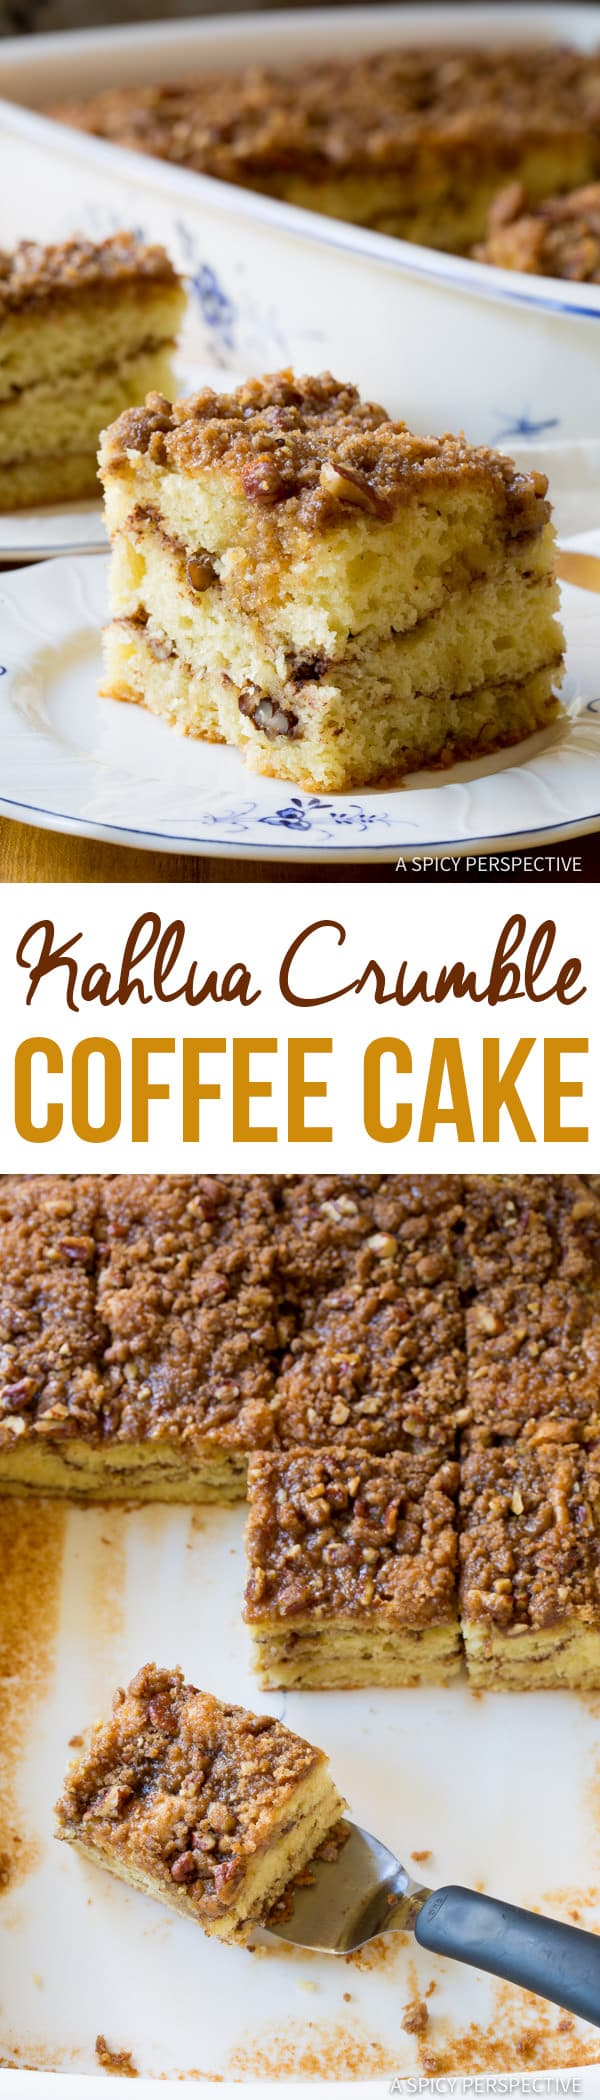 A Spicy Perspective Kahlua Coffee Cake - A Spicy Perspective